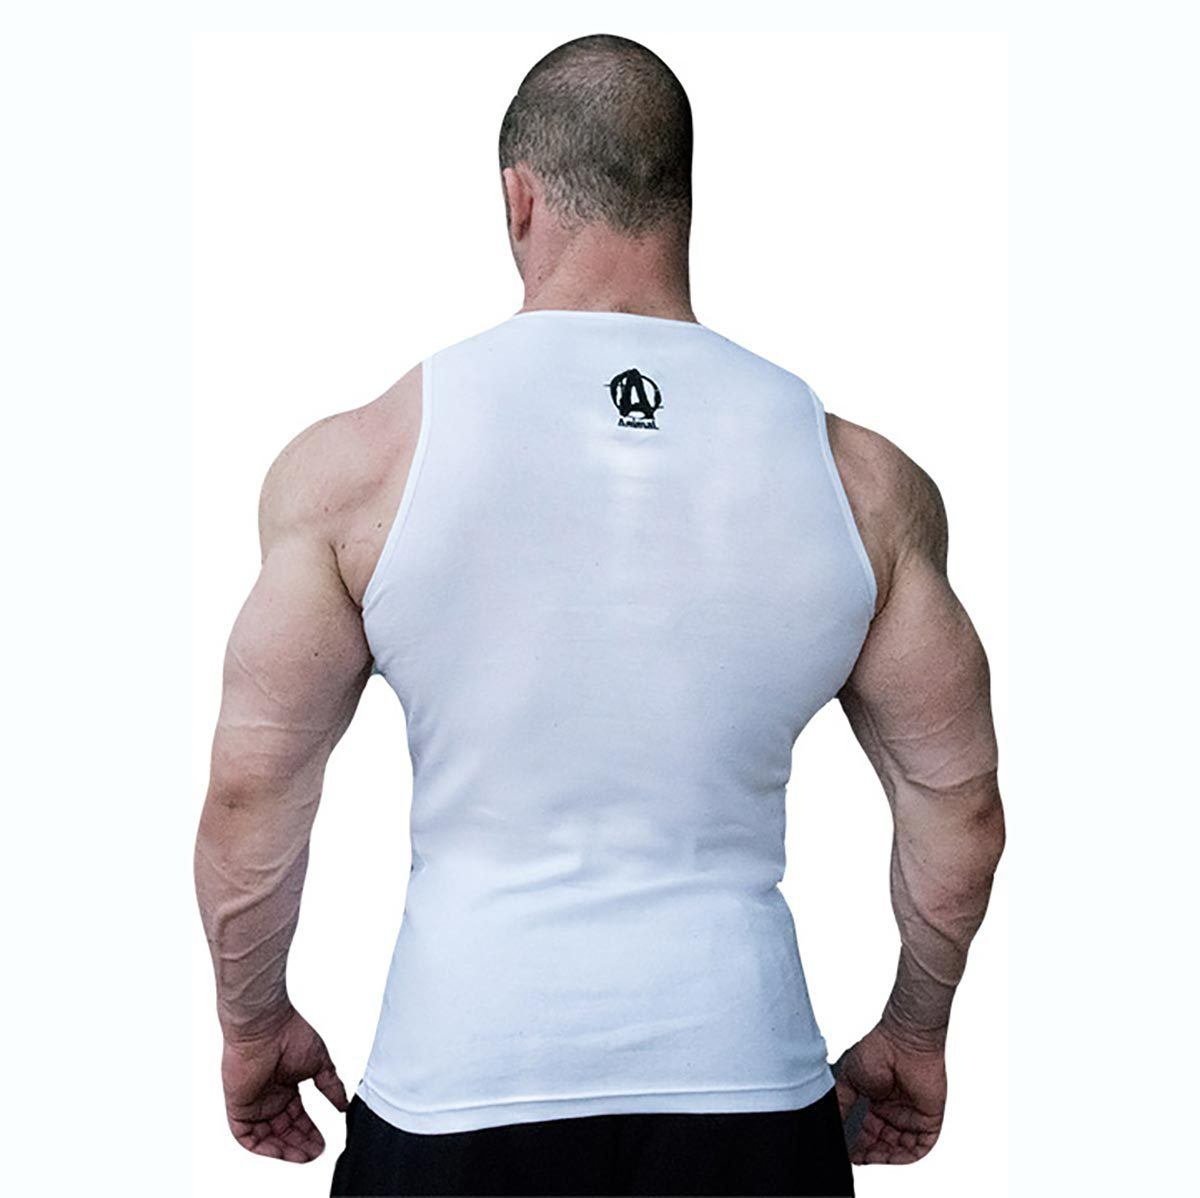 Universal Animal Tank Top (White) XL Fitness Accessories and Apparel Universal  (1058016526379)